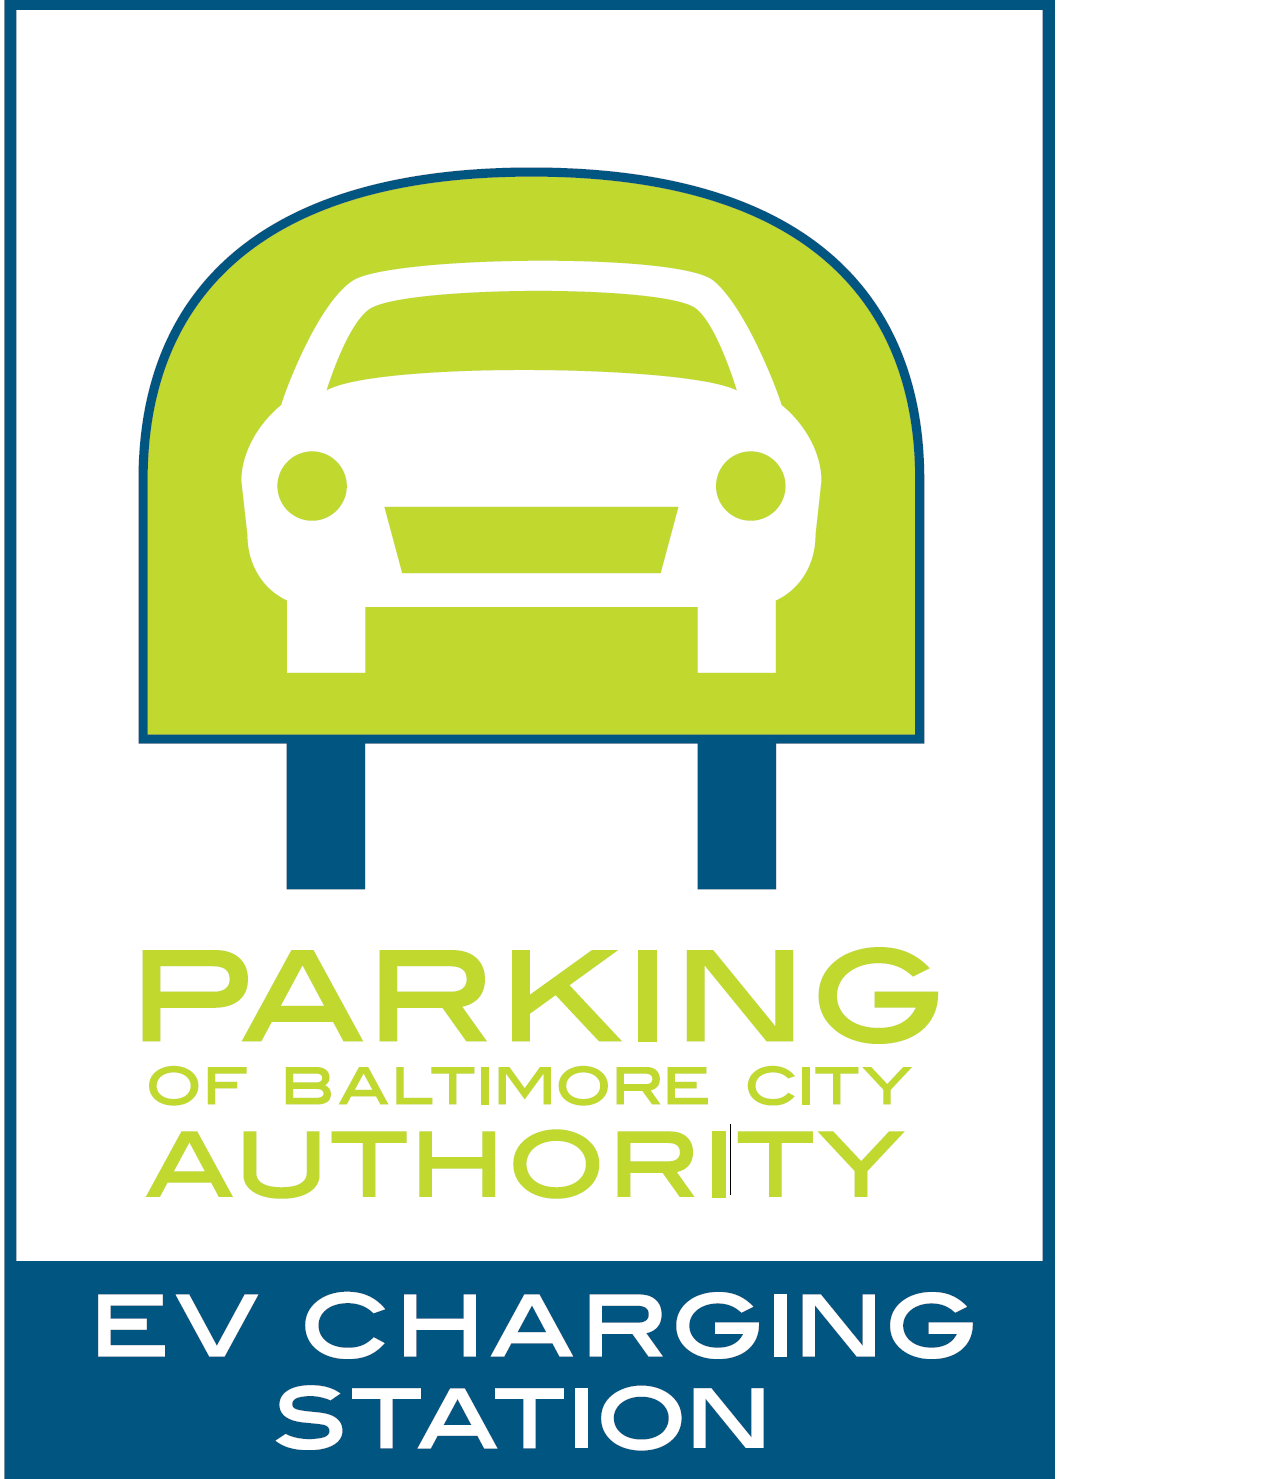 Electric Vehicle Charging Station Logo